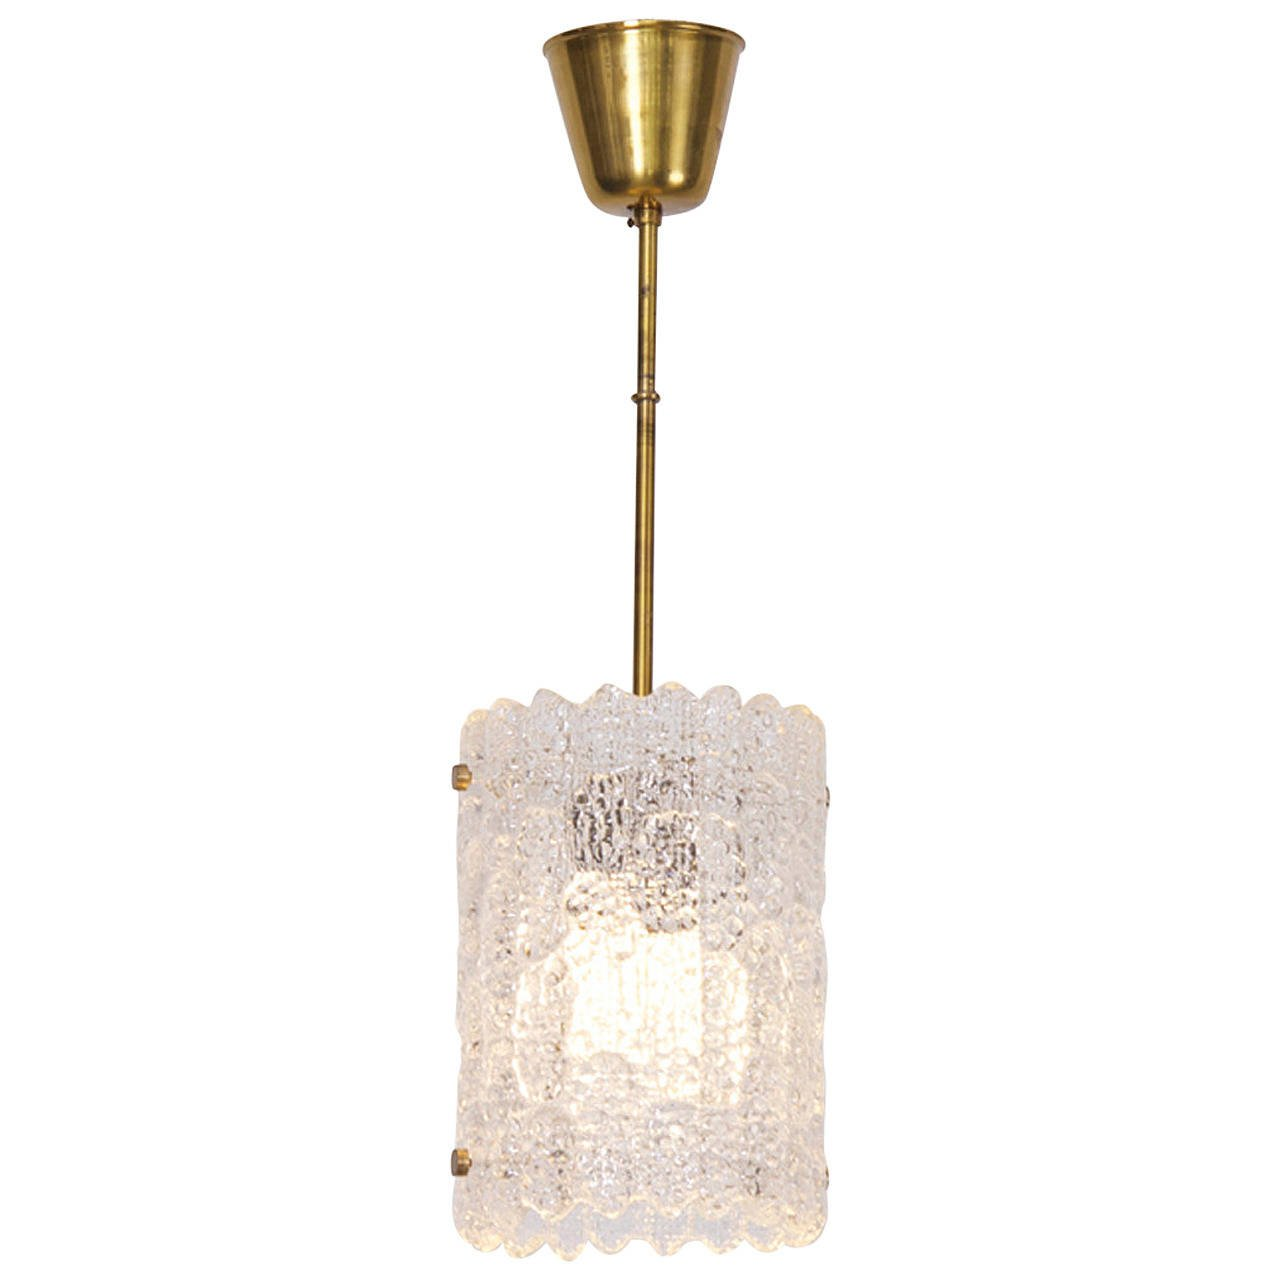 Orrefors Textured Glass Pendant by Carl Fagerlund